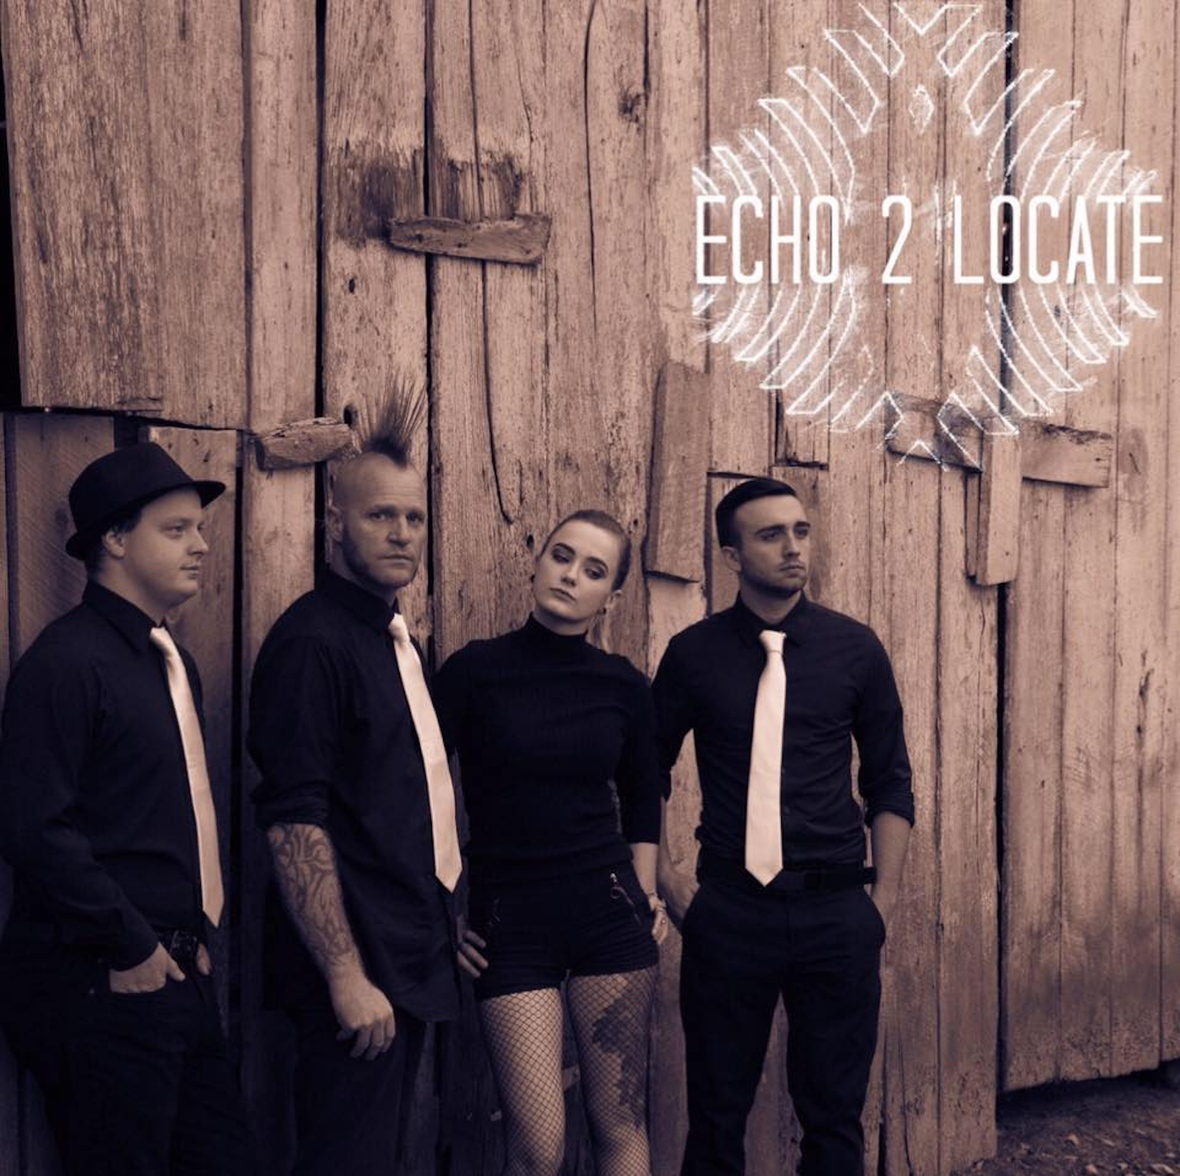 Echo 2 Locate Release Music Video For High